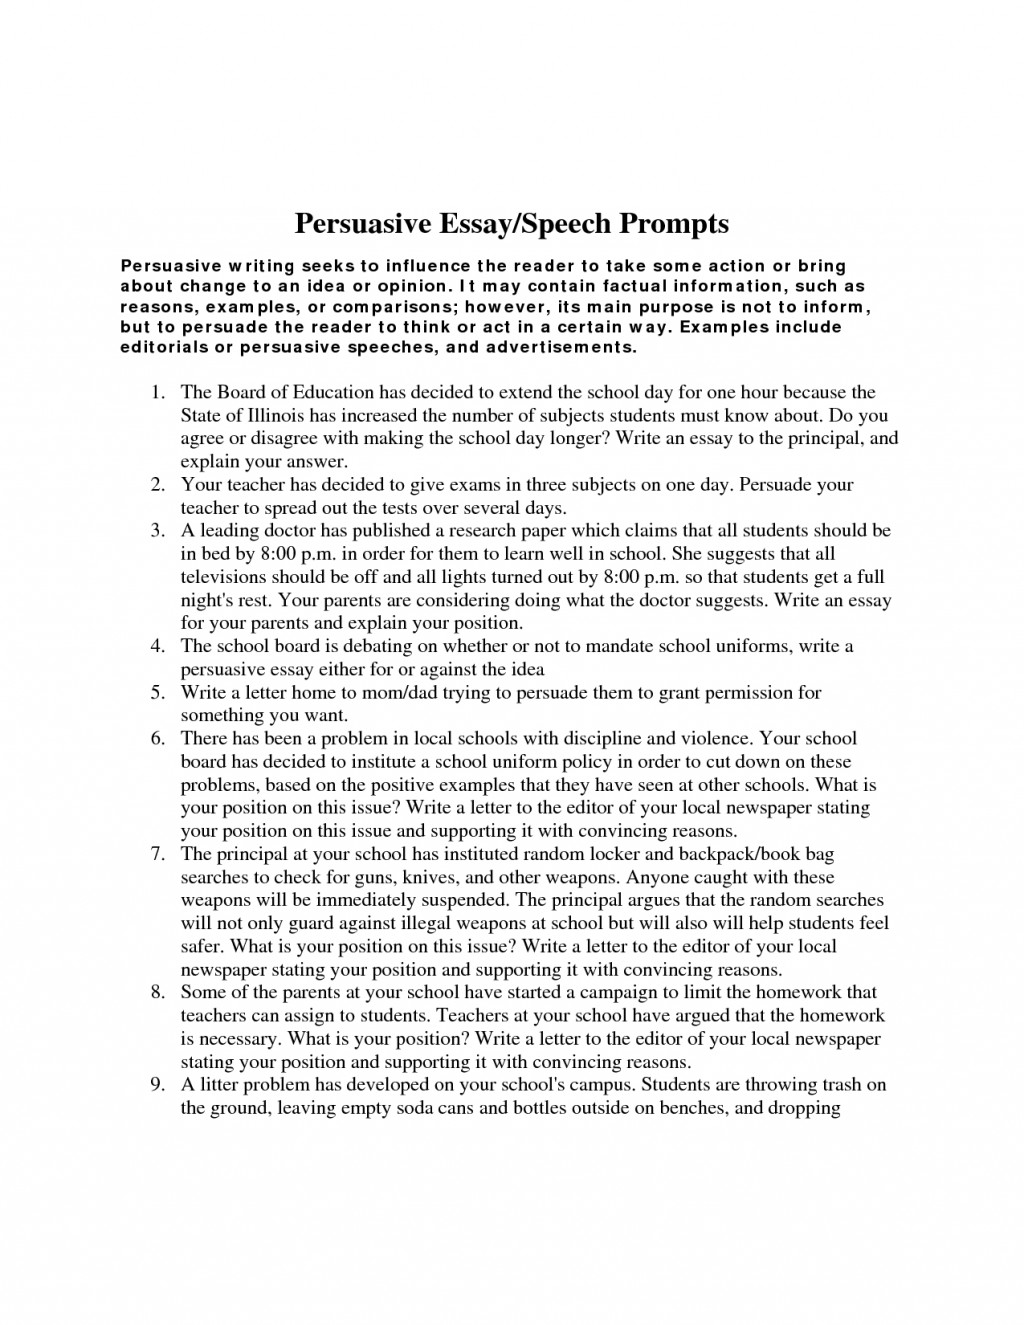 010 Essay Example College Prompt Examples Persuasive Unique 1 Application Prompts Large